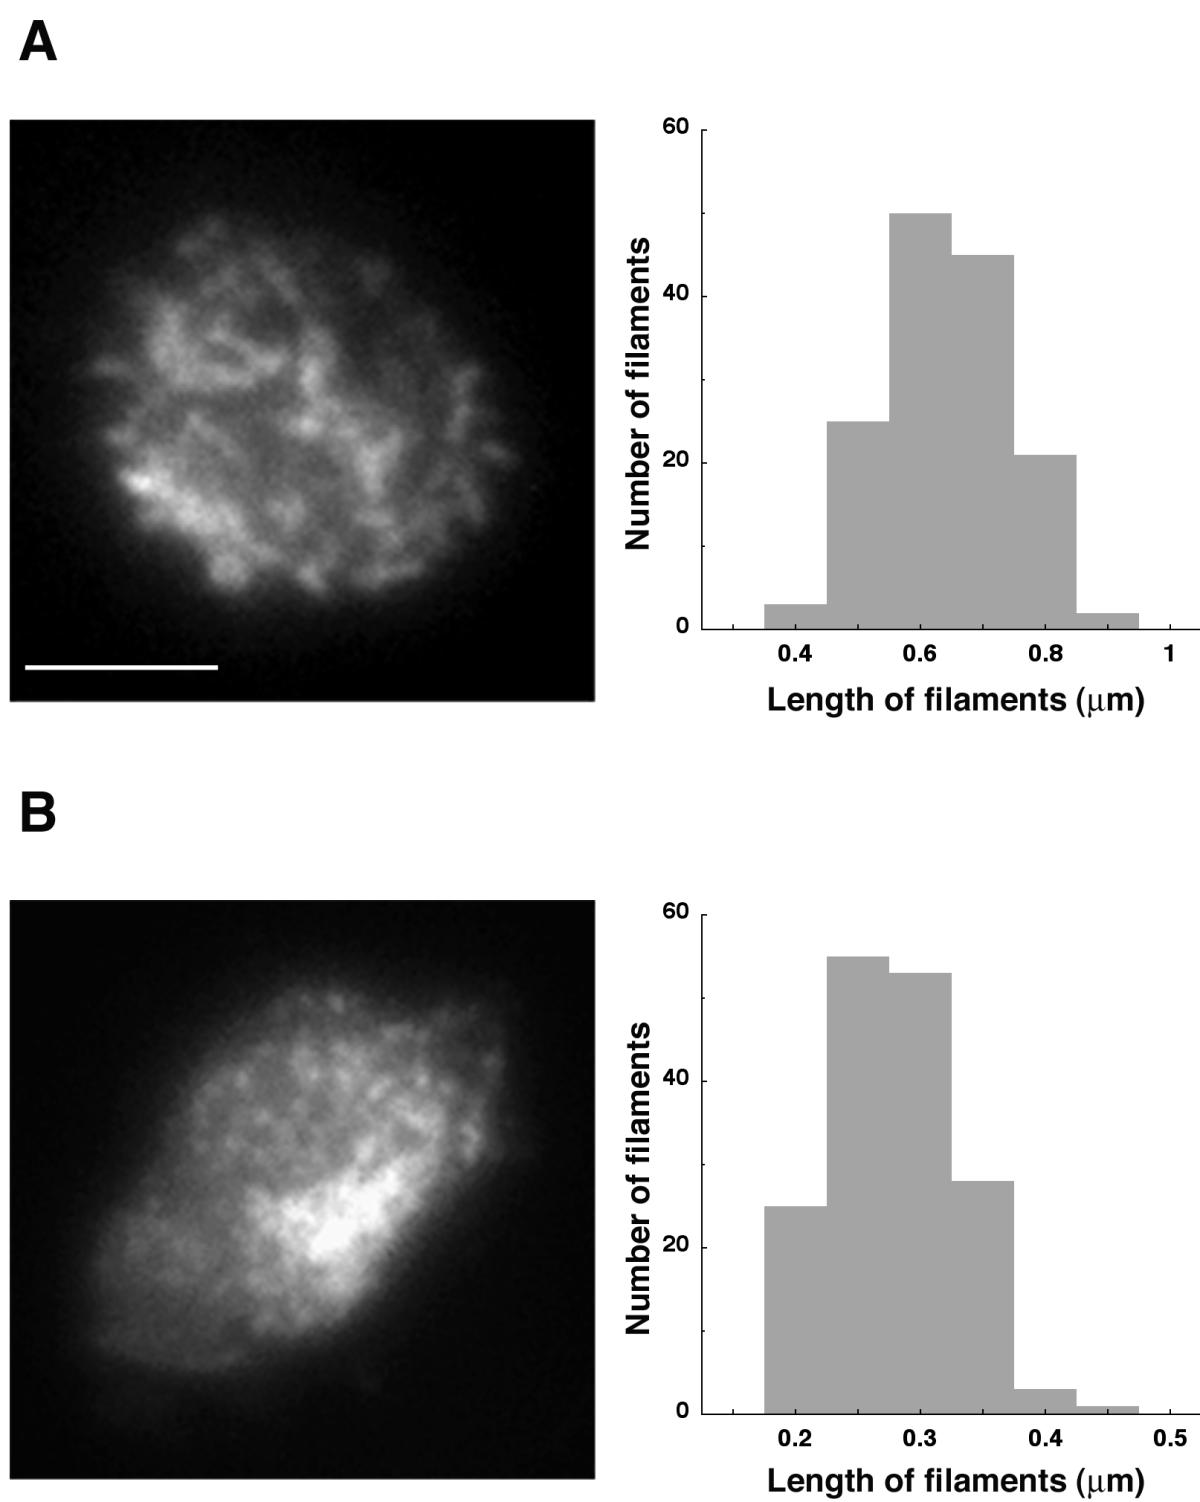 https://static-content.springer.com/image/art%3A10.1186%2F1471-2121-3-19/MediaObjects/12860_2002_Article_48_Fig6_HTML.jpg